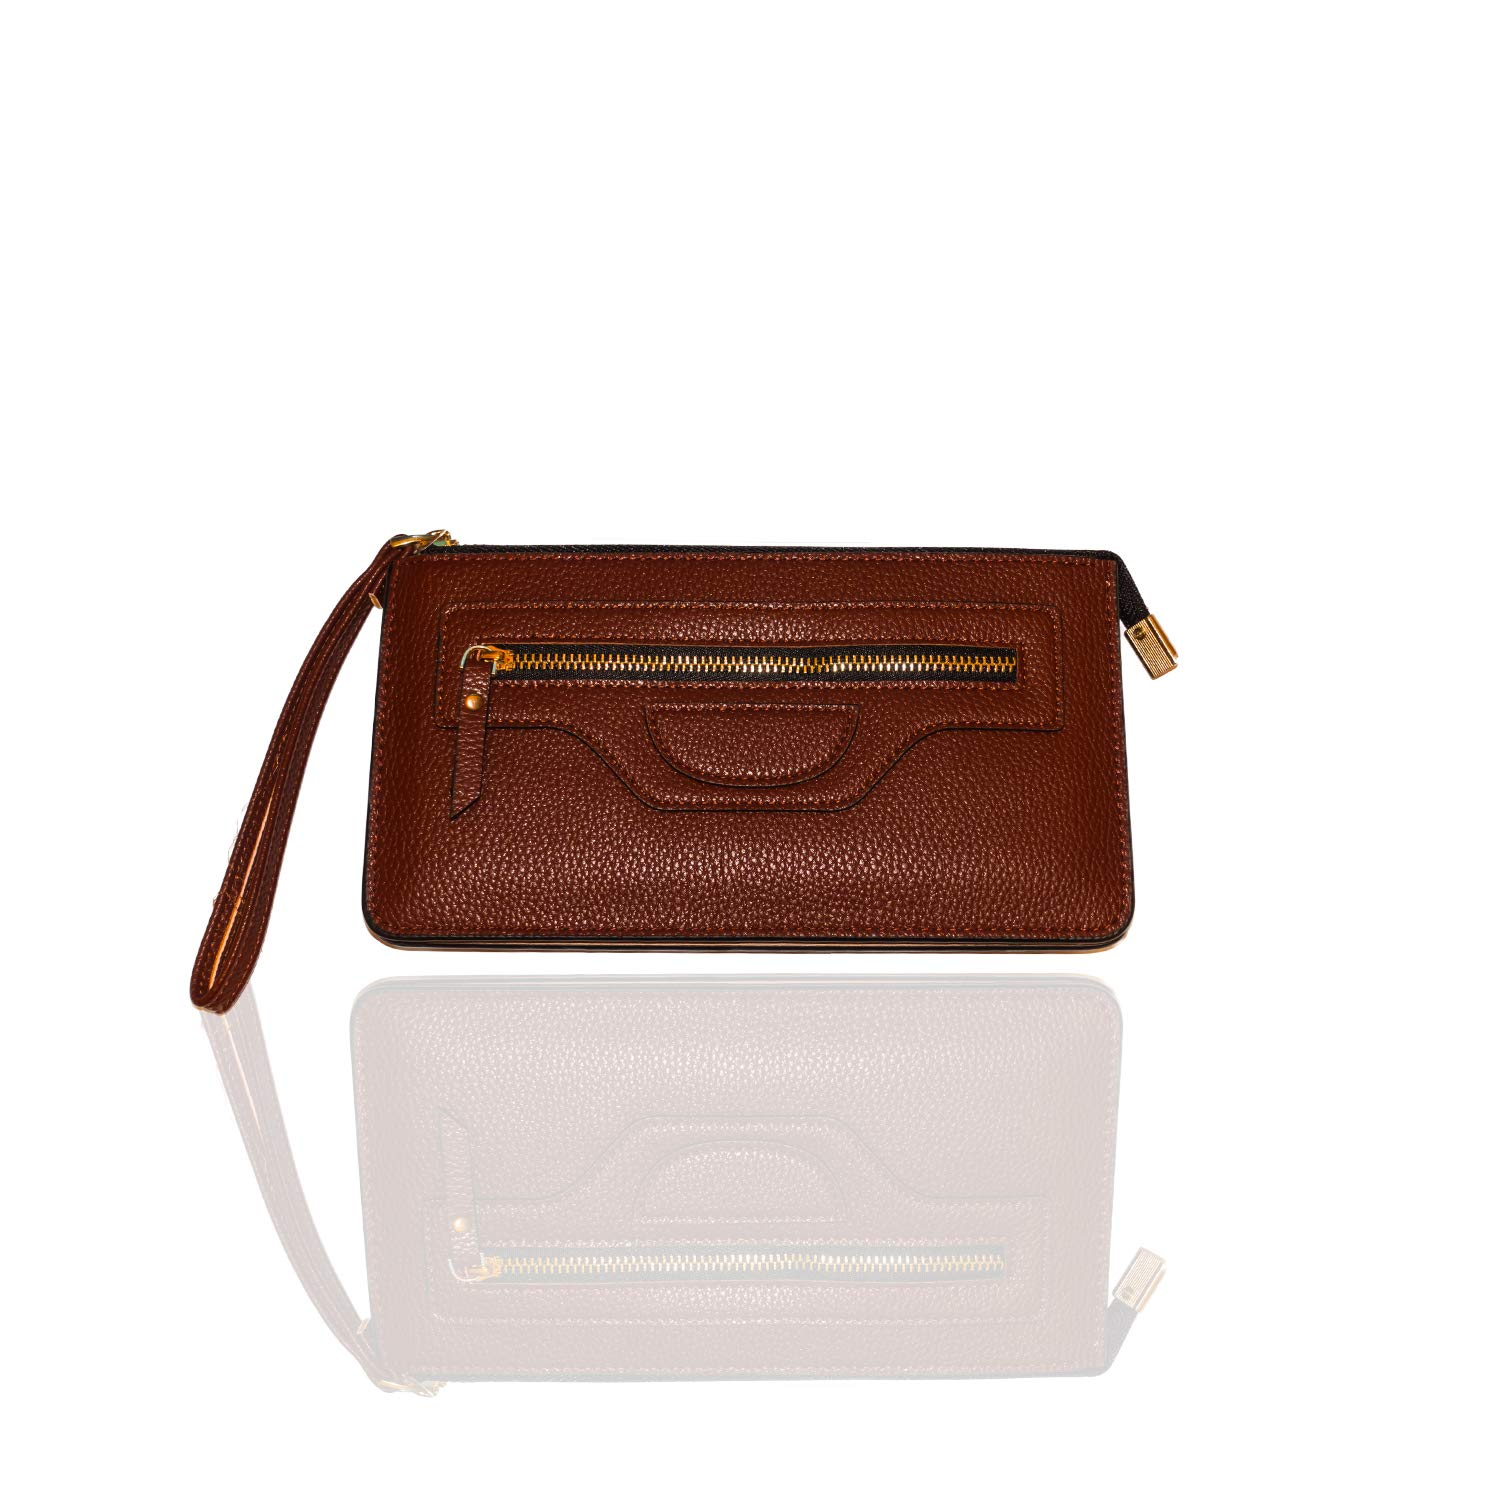 Carter Leatherworks Rodeo Womens PU Vegan Leather Wristlet Wallet Clutch Purse Fits Any Smartphone (Coffee) by Carter Leatherworks (Image #1)